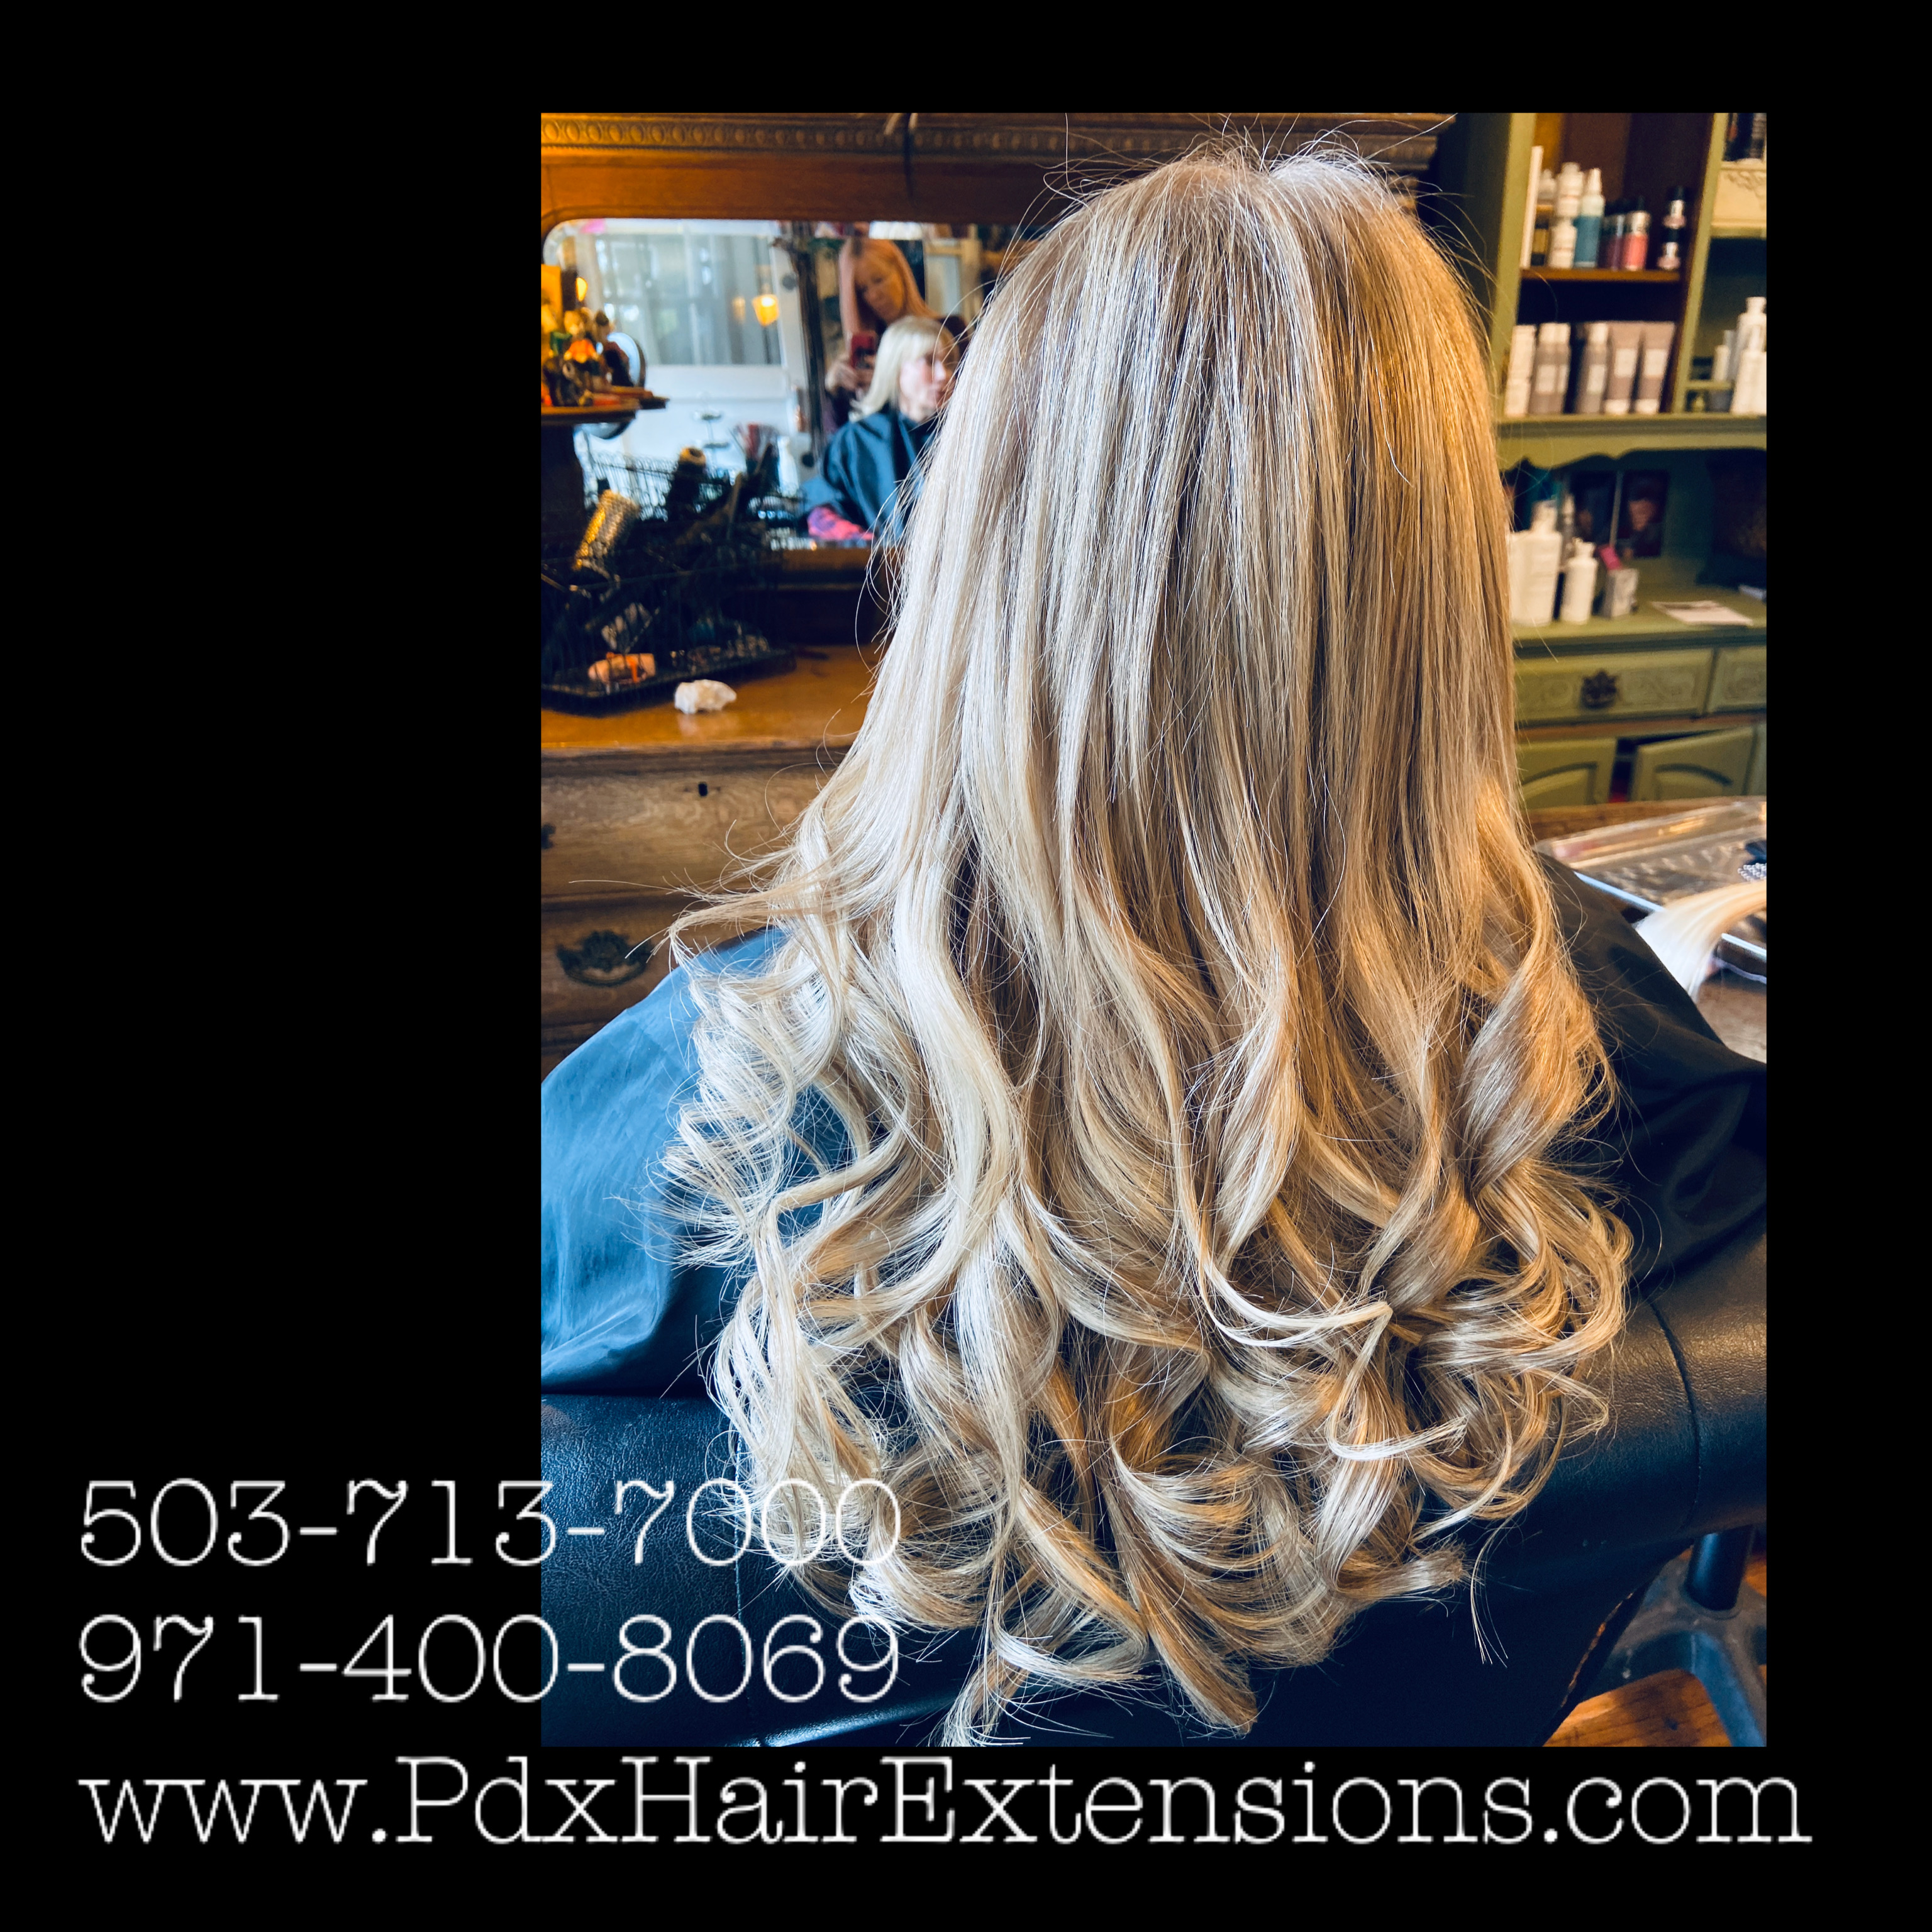 Lt. Blonde Curled Extensions